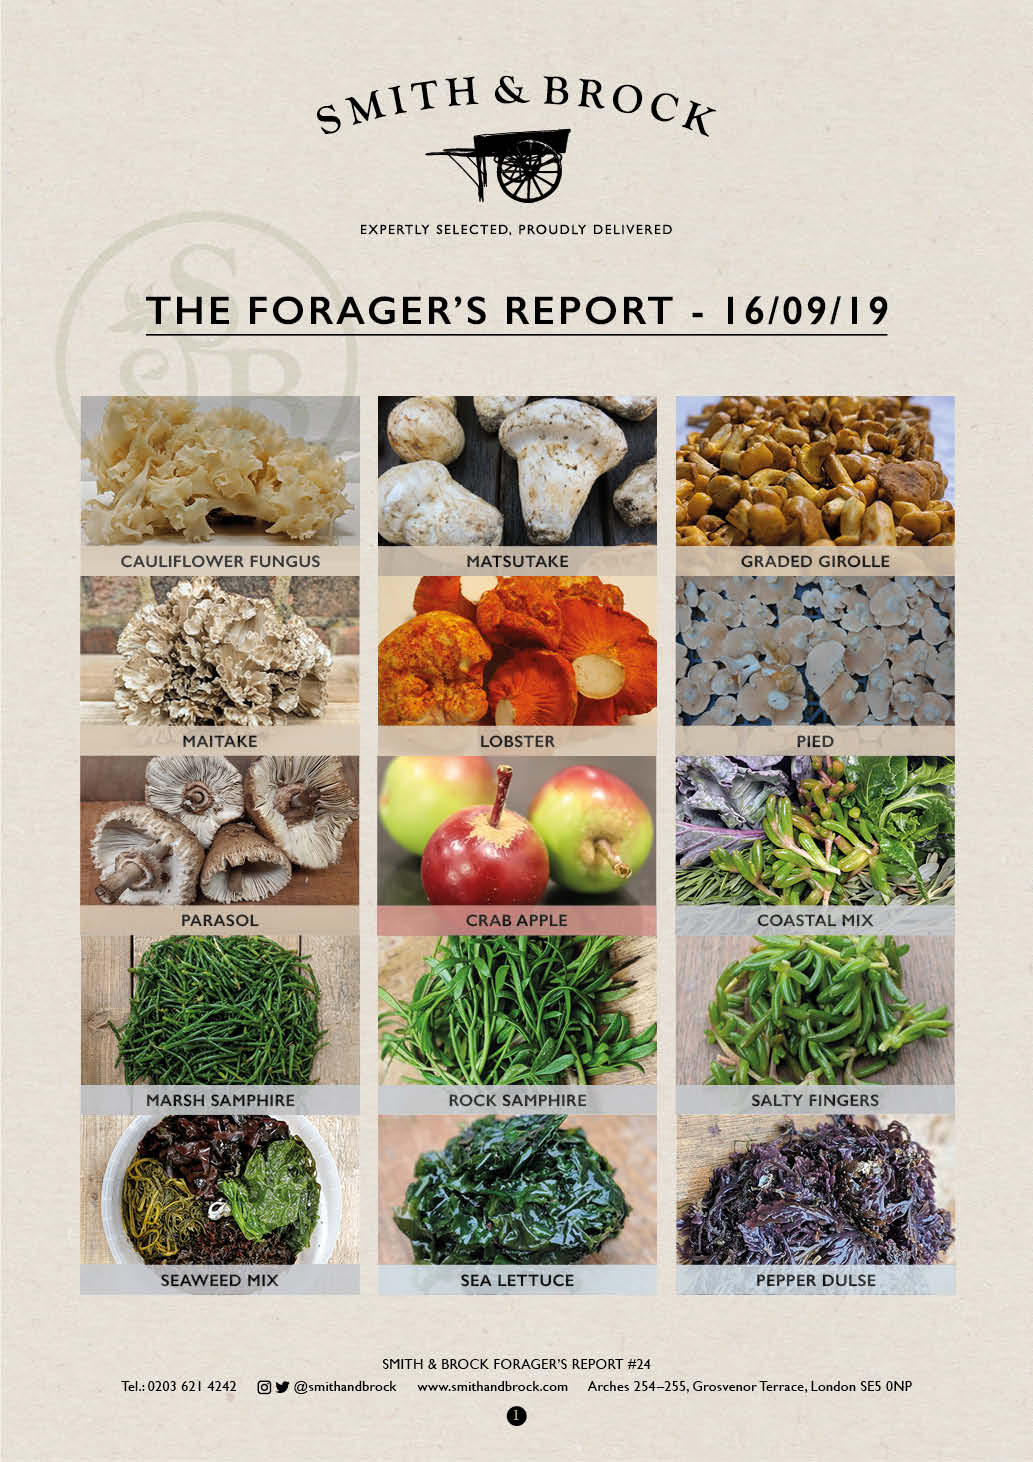 Smith&Brock Foraged Products Report 09 Sep 2019 23